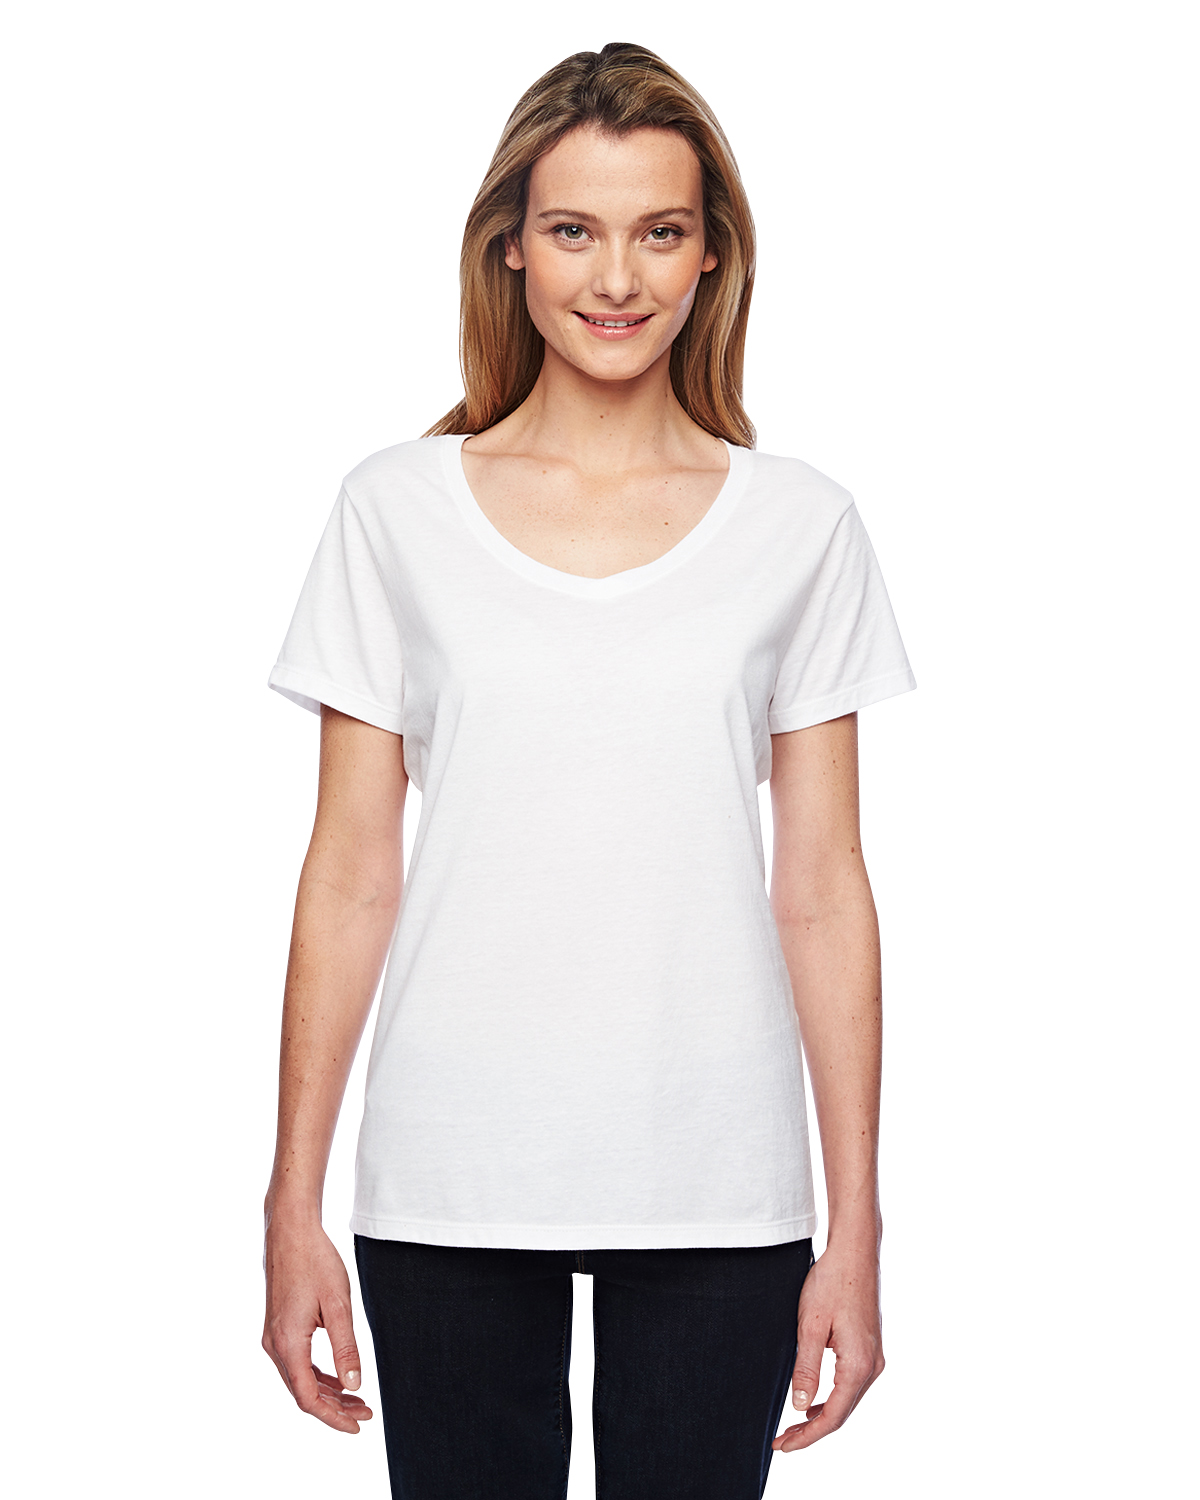 Hanes 42V0 - Ladies' Xtemp Performance V Neck Tee Shirt